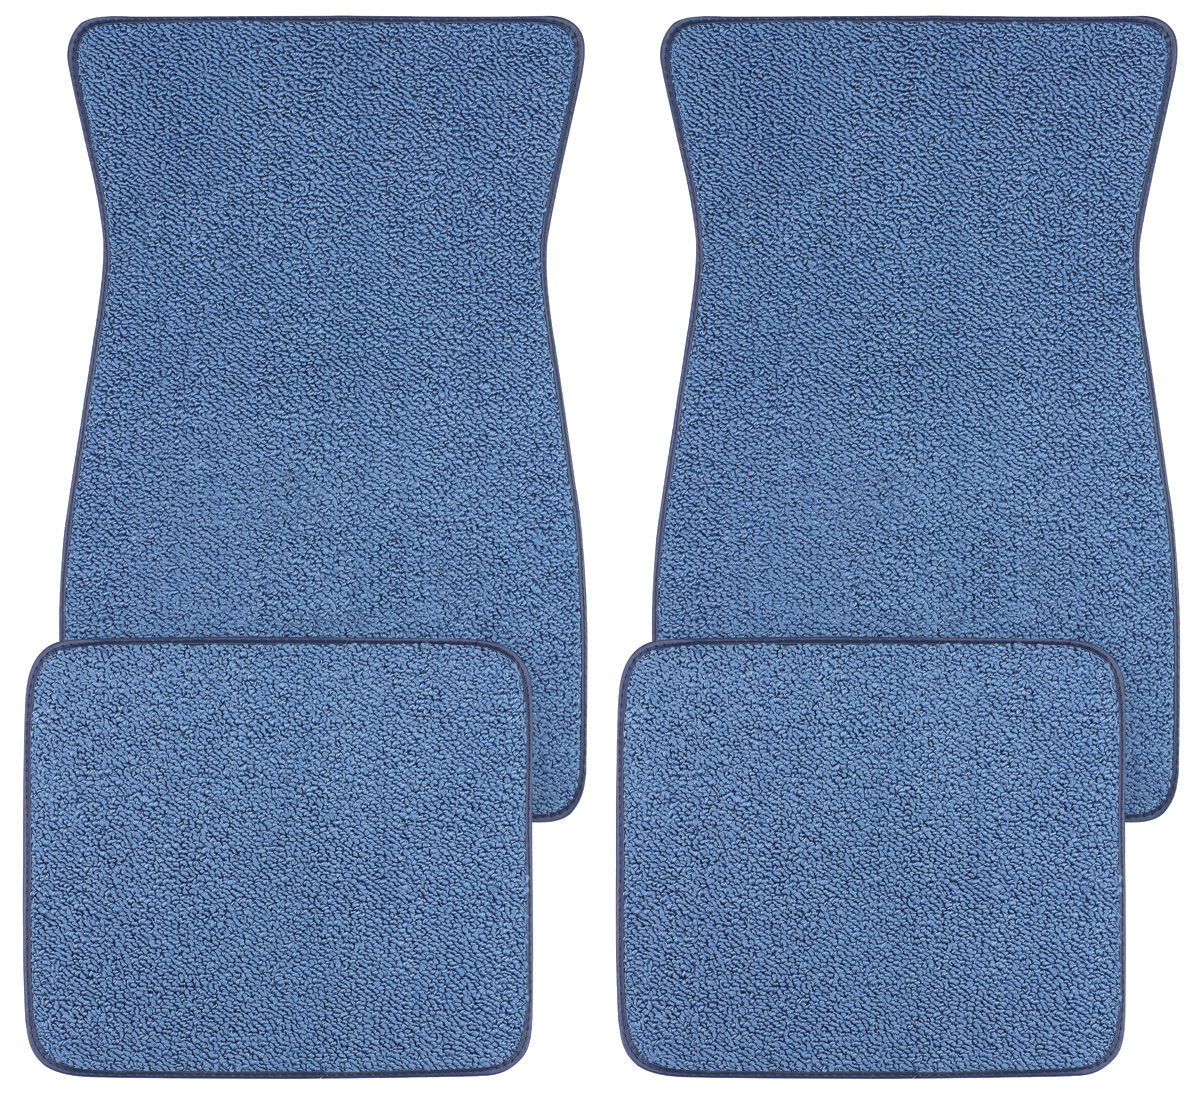 GGBAILEY D51237-F1A-GY-LP Custom Fit Automotive Carpet Floor Mats for 1969 1970 1974 1975 Volvo 164 Sedan Grey Loop Driver /& Passenger 1972 1971 1973